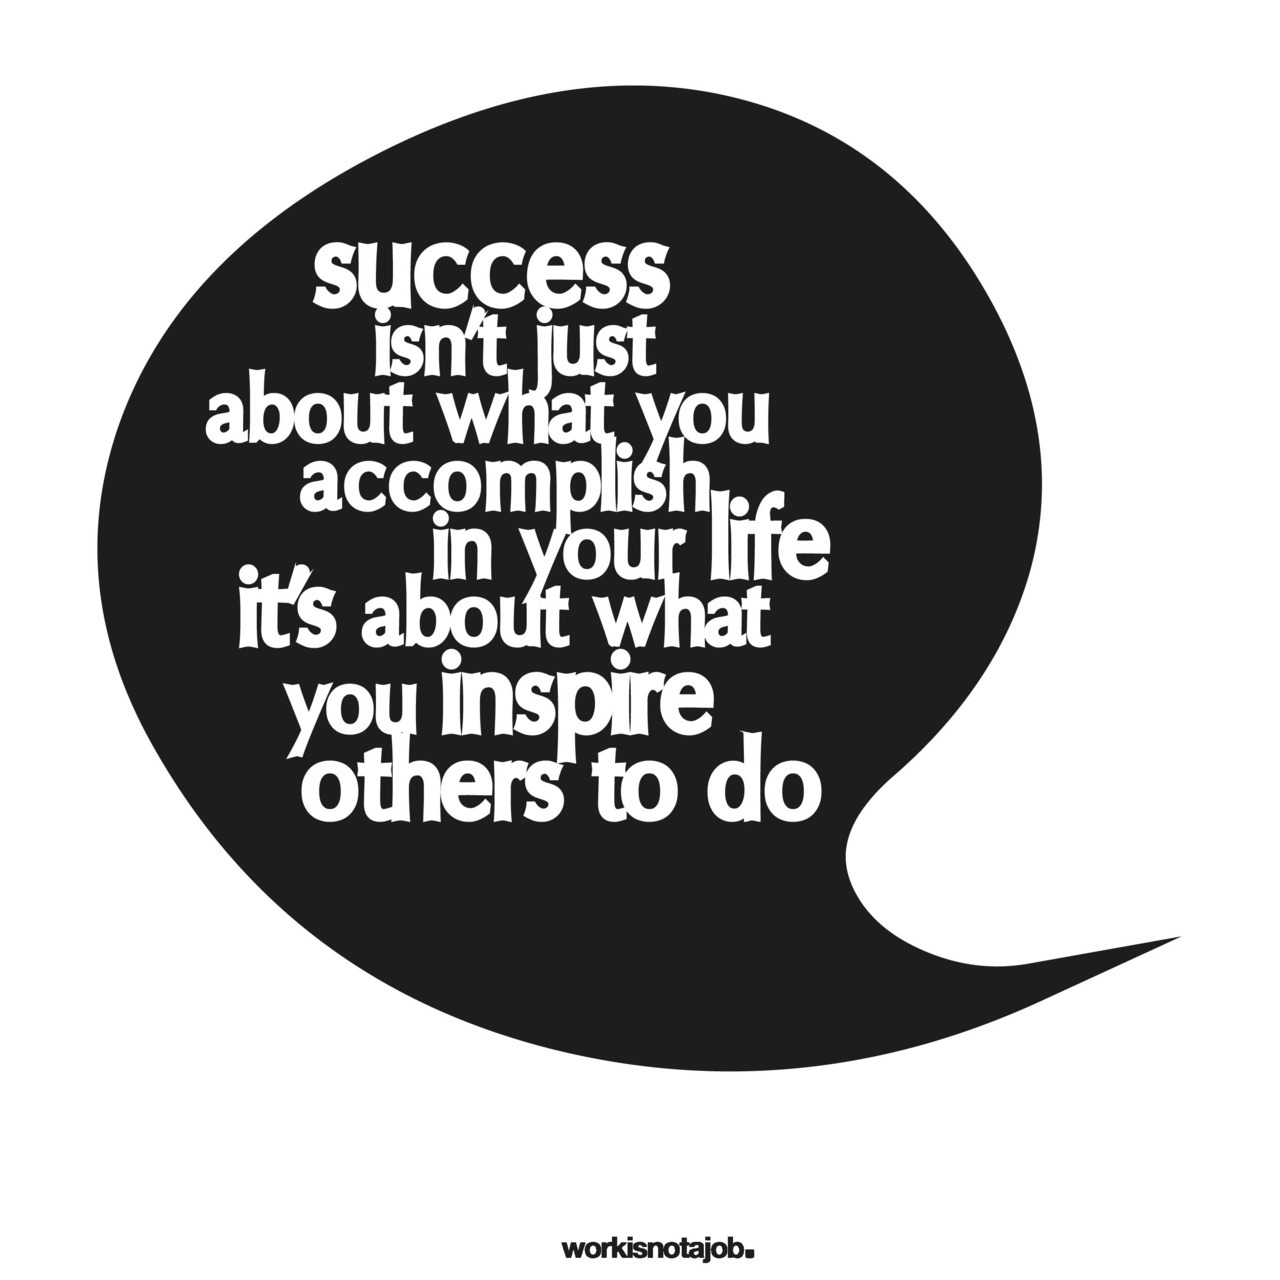 Success isn't just about what you accomplish in your life. It's about what you inspire others to do. http://www.facebook.com/workisnotajob